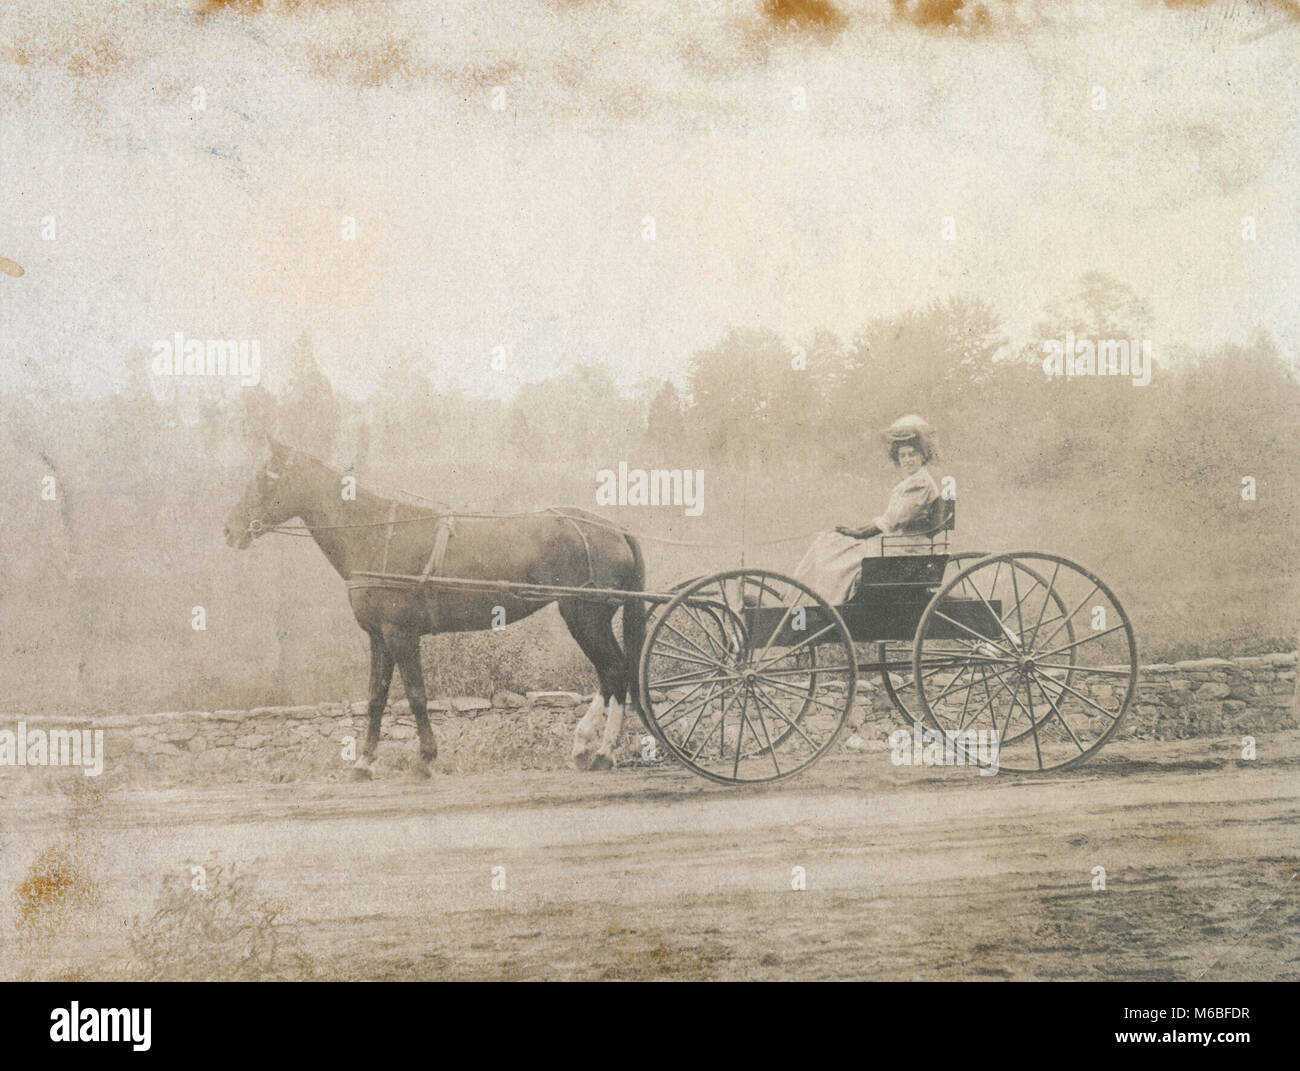 Antique c1900 photograph, woman horse-drawn driving carriage. Location unknown, probably New England, USA. - Stock Image